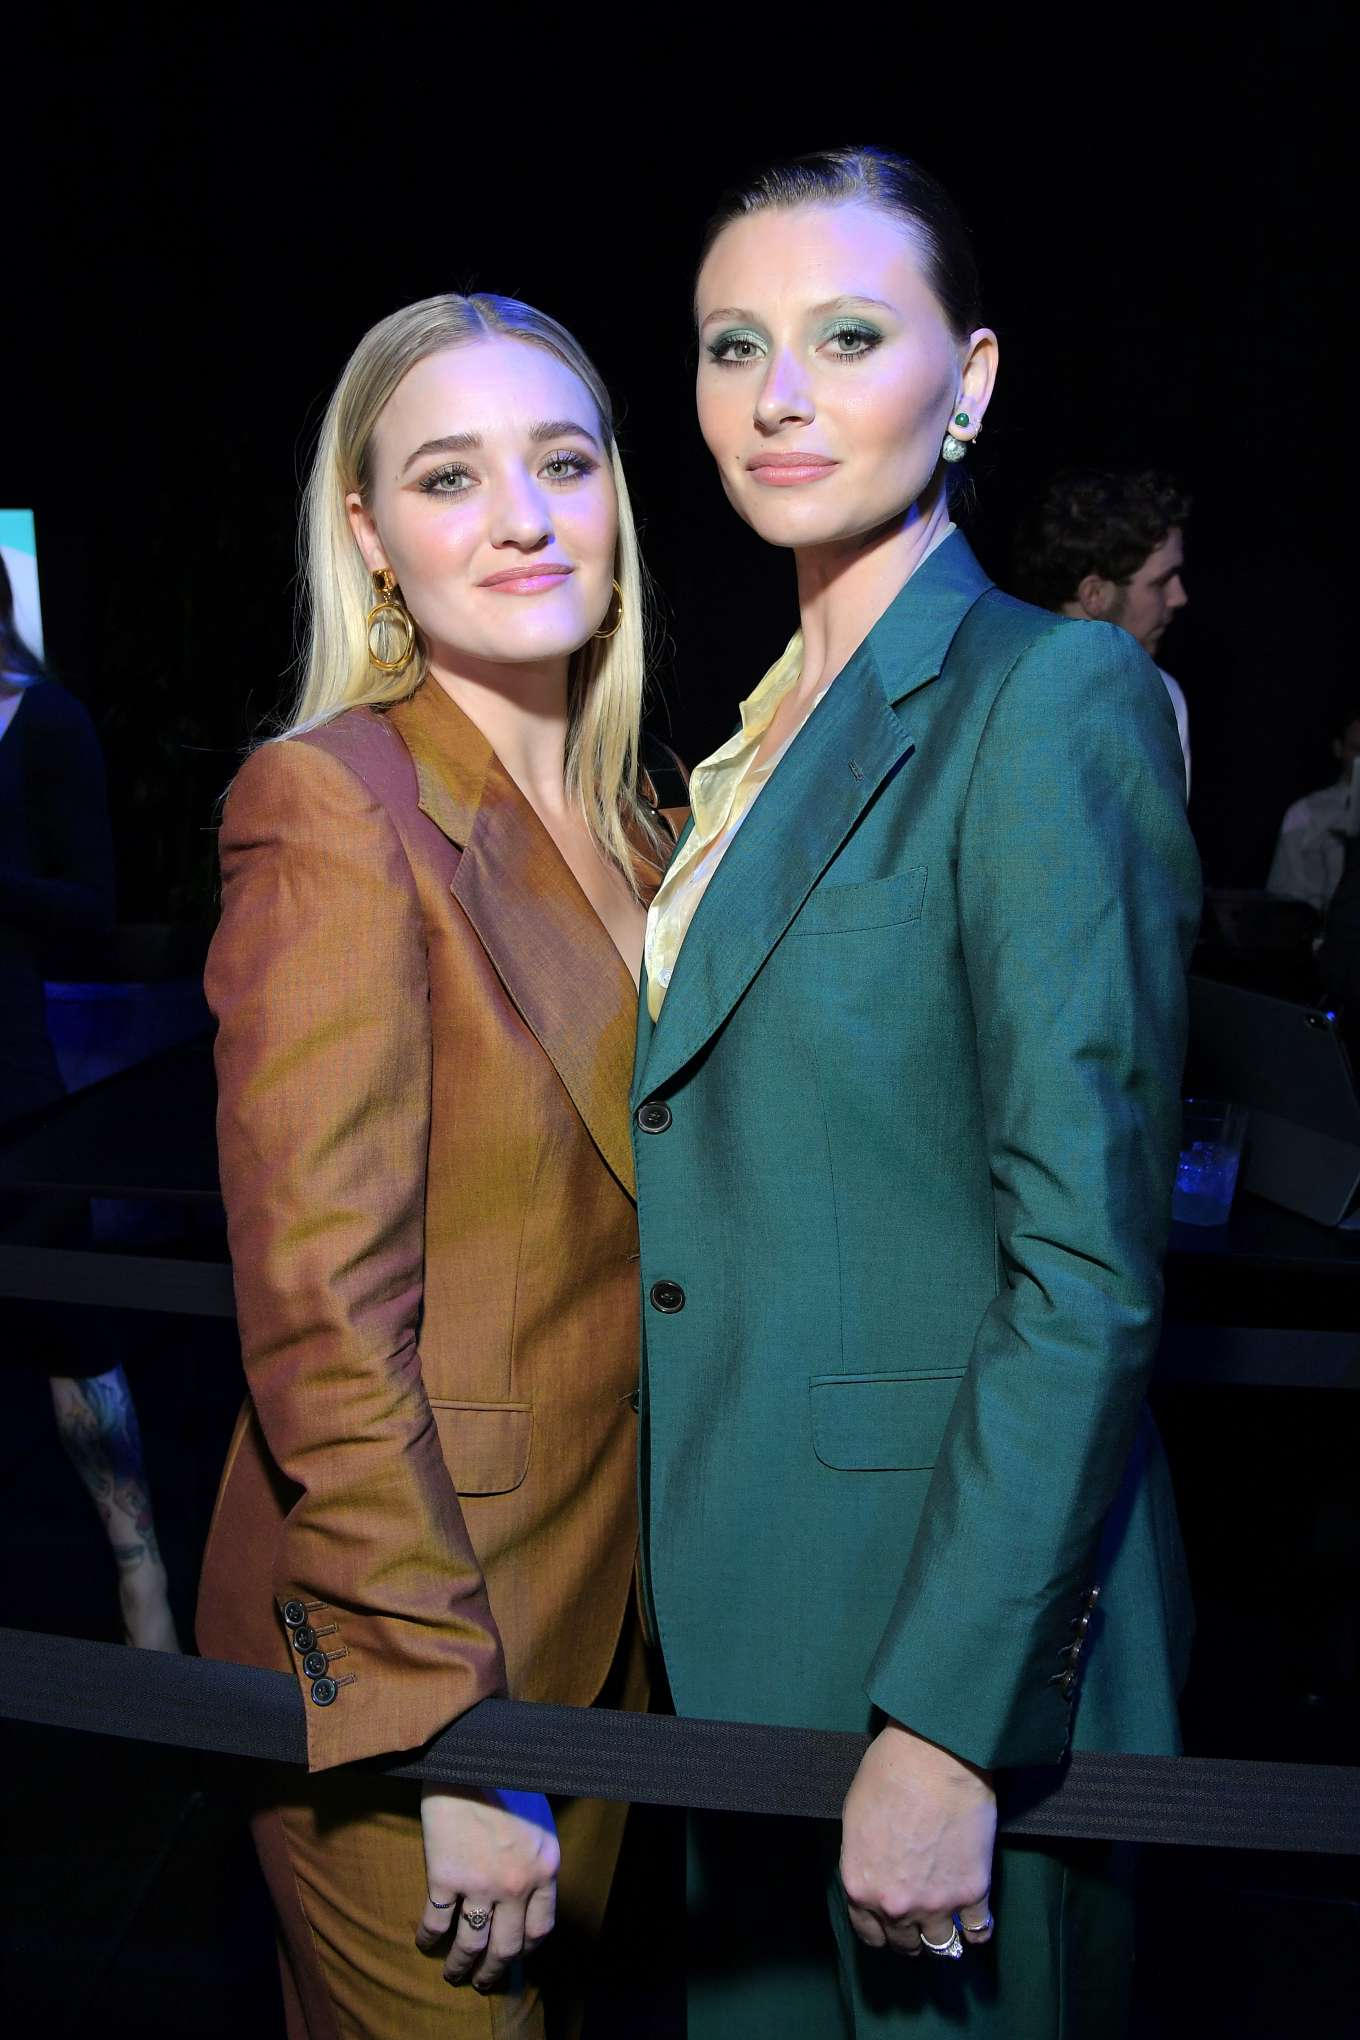 AJ Michalka and Aly Michalka - Spotify 'Best New Artist' Party in Los Angeles